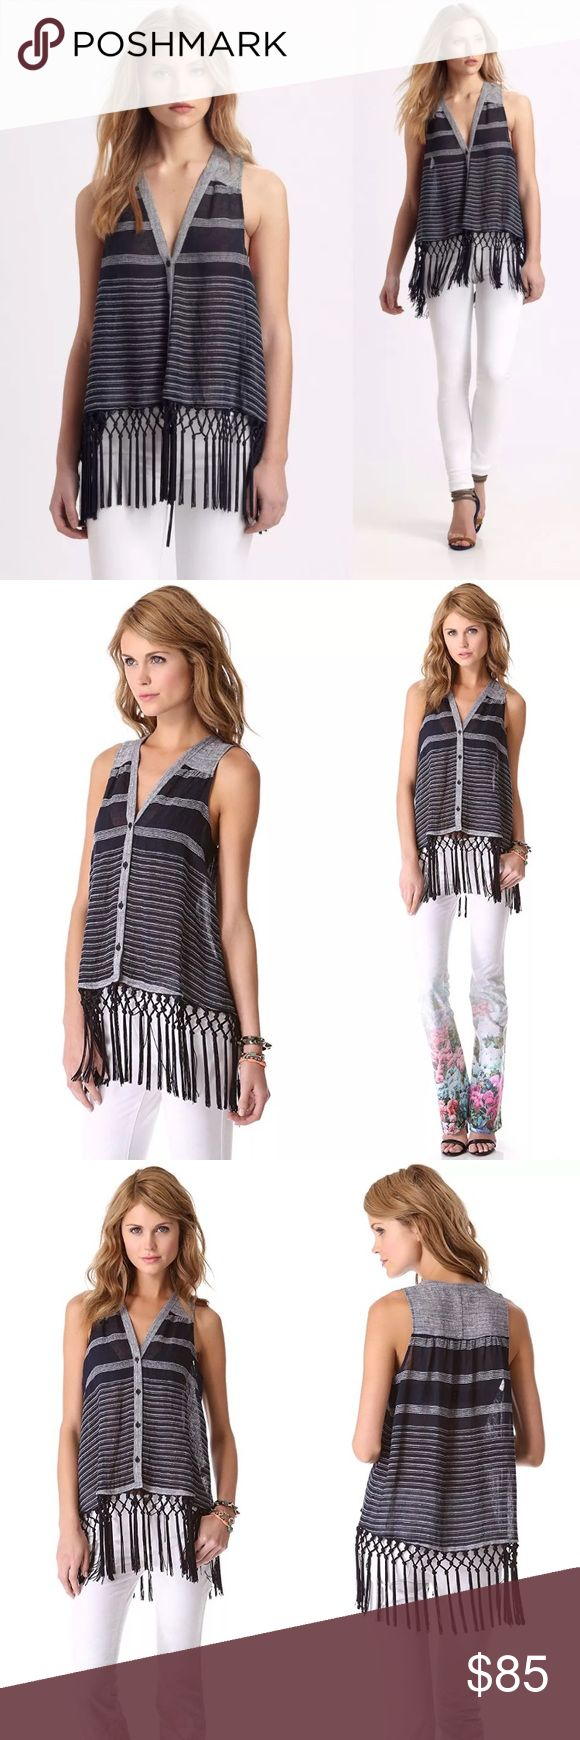 "New Rebecca Minkoff Maui Fringed Top New without Tags  $228  Sold out  Bust: 40""  Length with fringe: 32""   Slinky, tasseled fringe falls from the hem of a striped, sleeveless blouse, adding a playful touch to the boxy silhouette. V neckline and button placket.   Fabric: Textured weave.  80% linen/10% polyamide/7% cotton/3% acrylic.  Dry clean.  Imported, China. Rebecca Minkoff Tops Tunics"